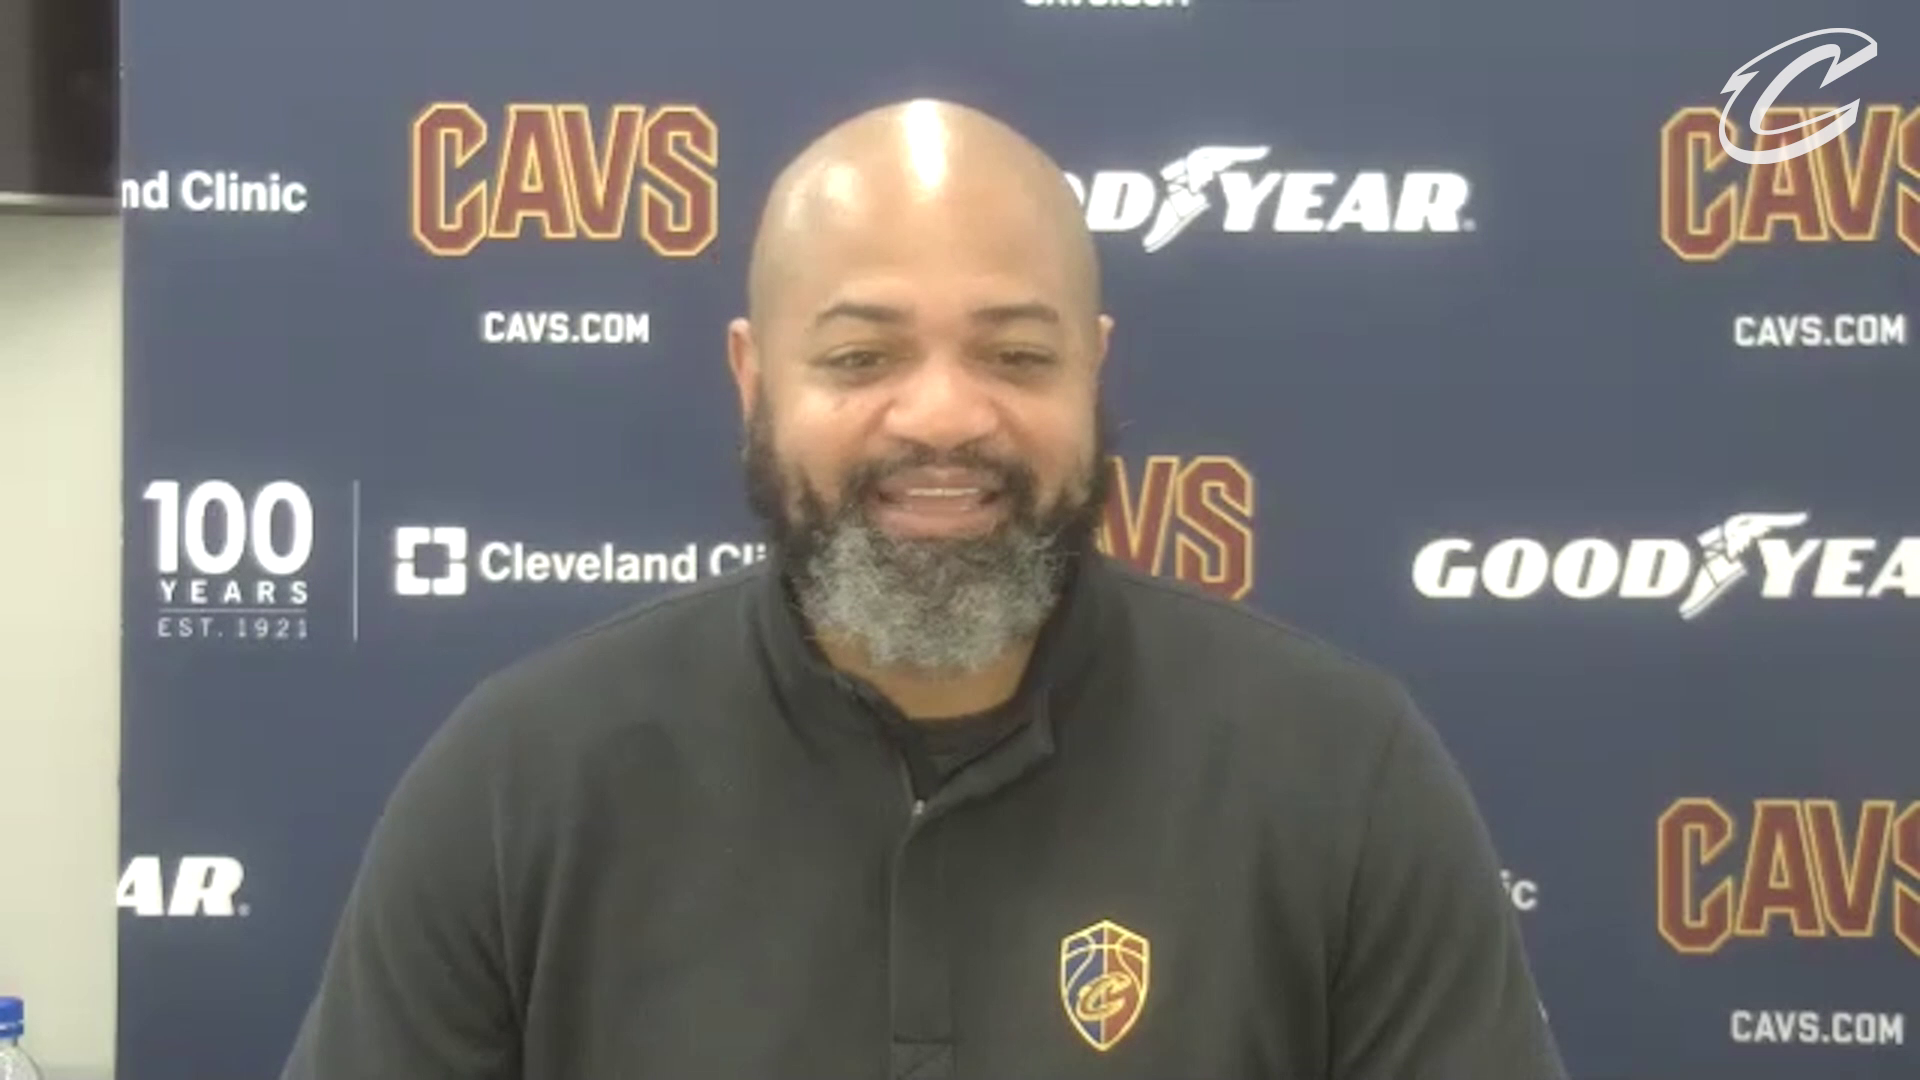 Cavs vs Celtics Postgame: Coach Bickerstaff